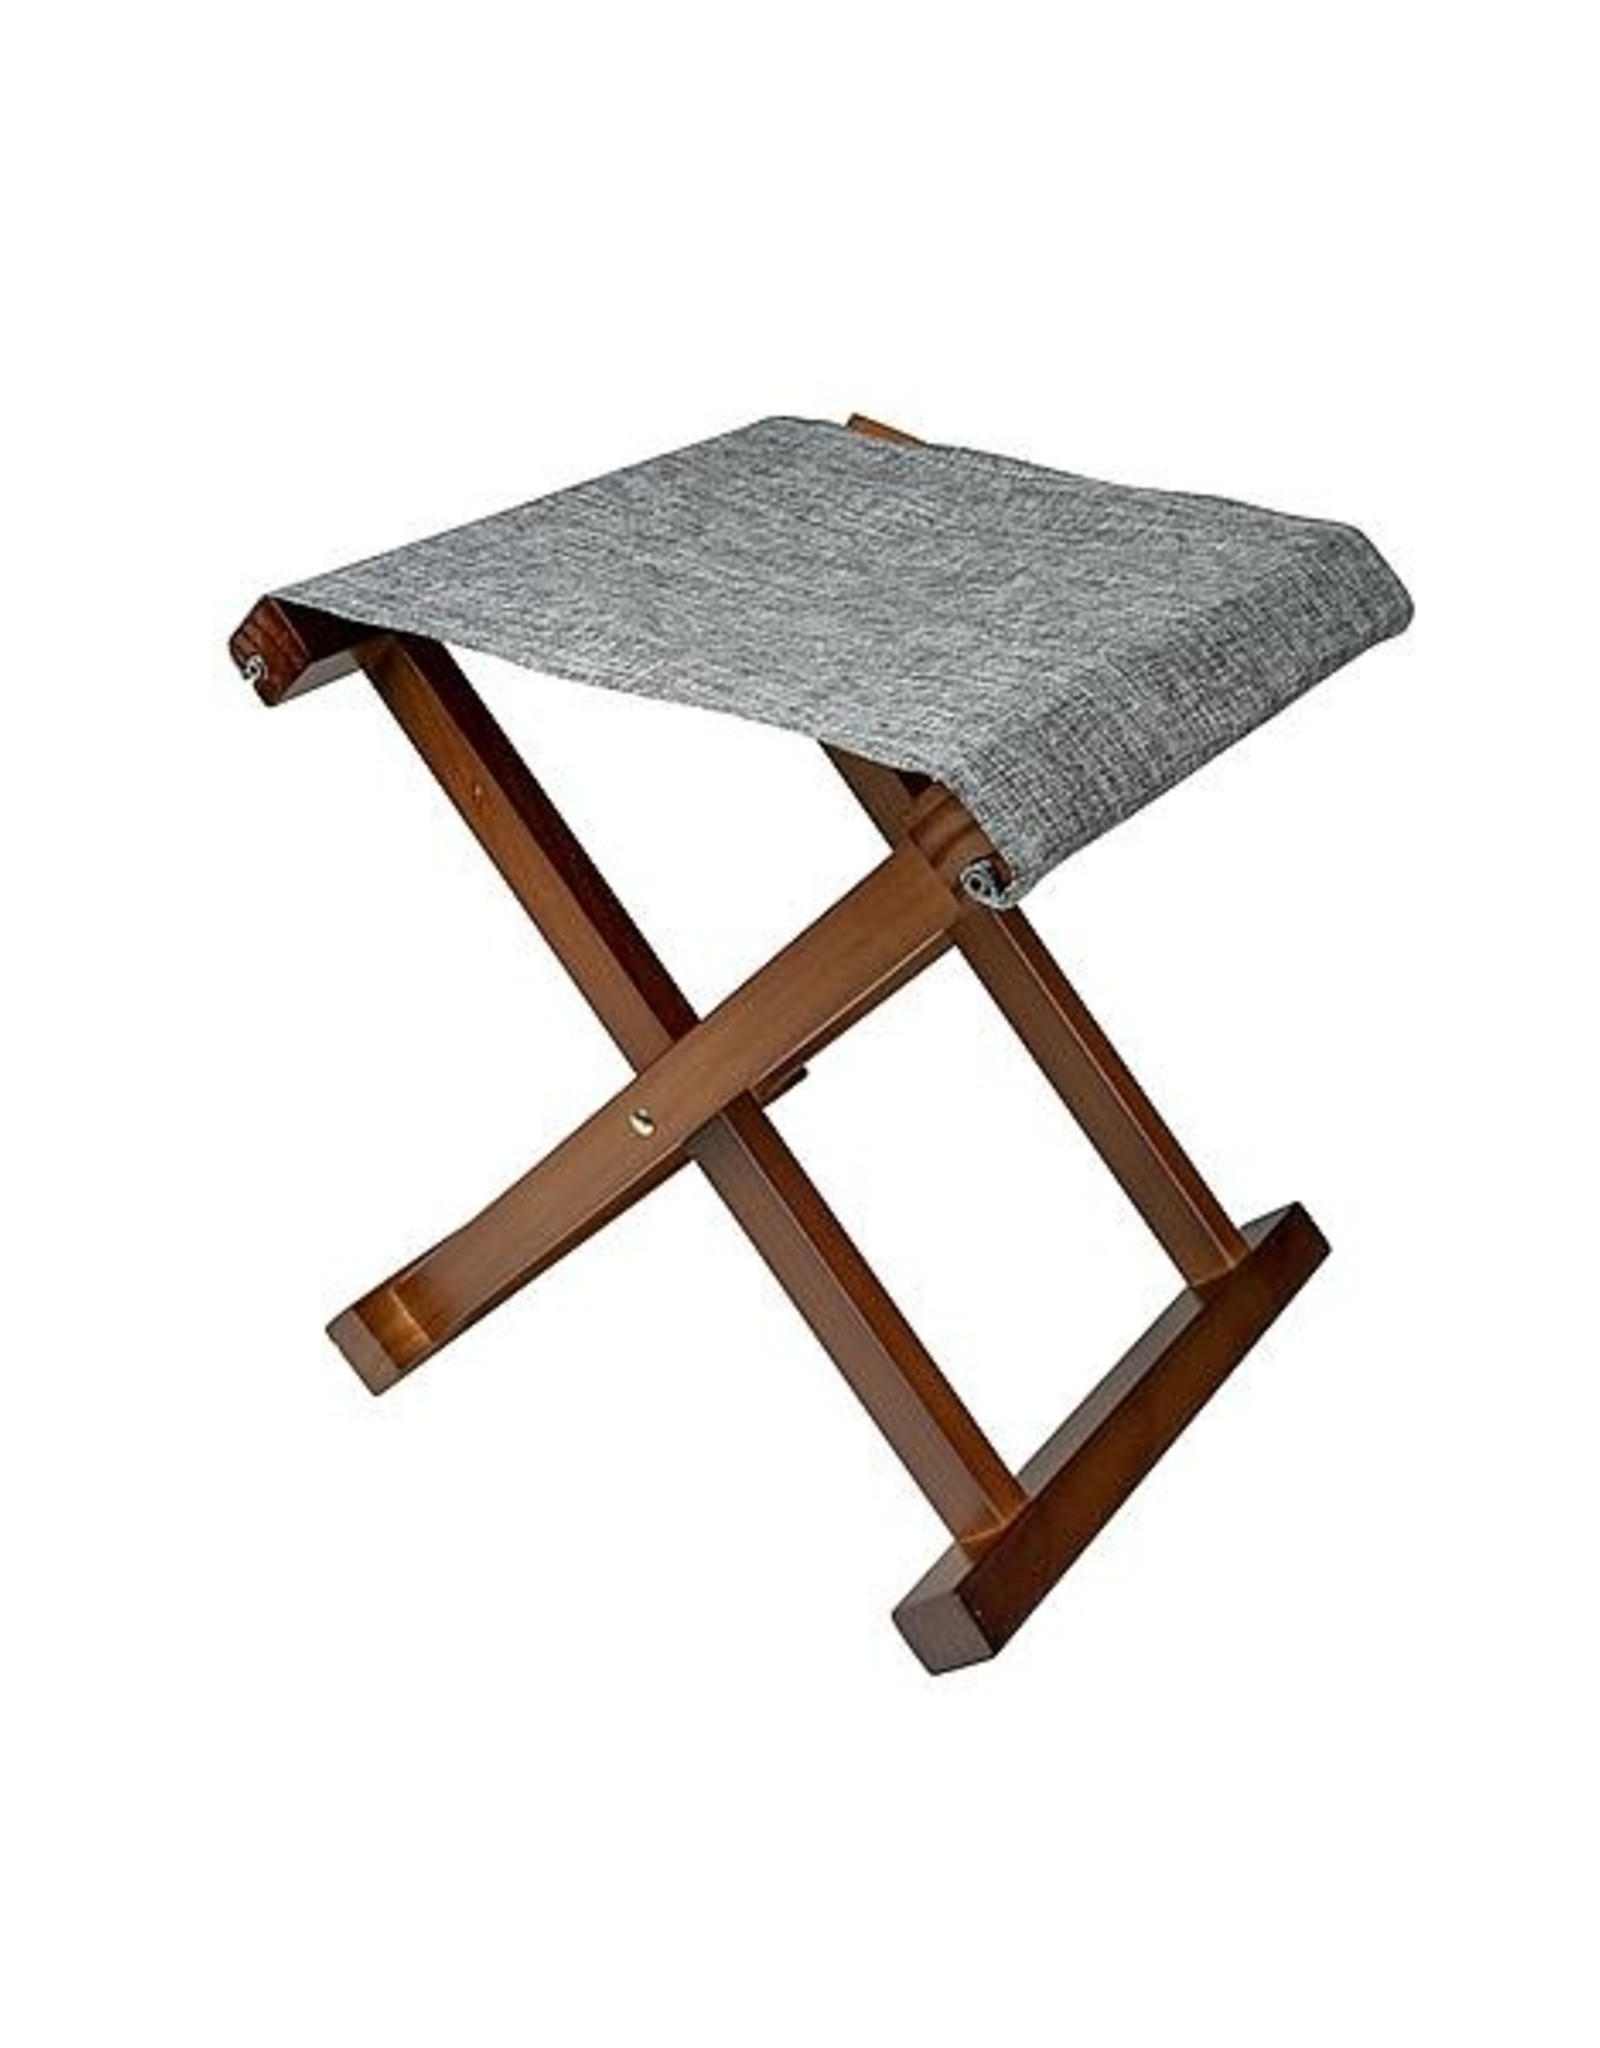 Bo-Camp urban collection Brentford footstool